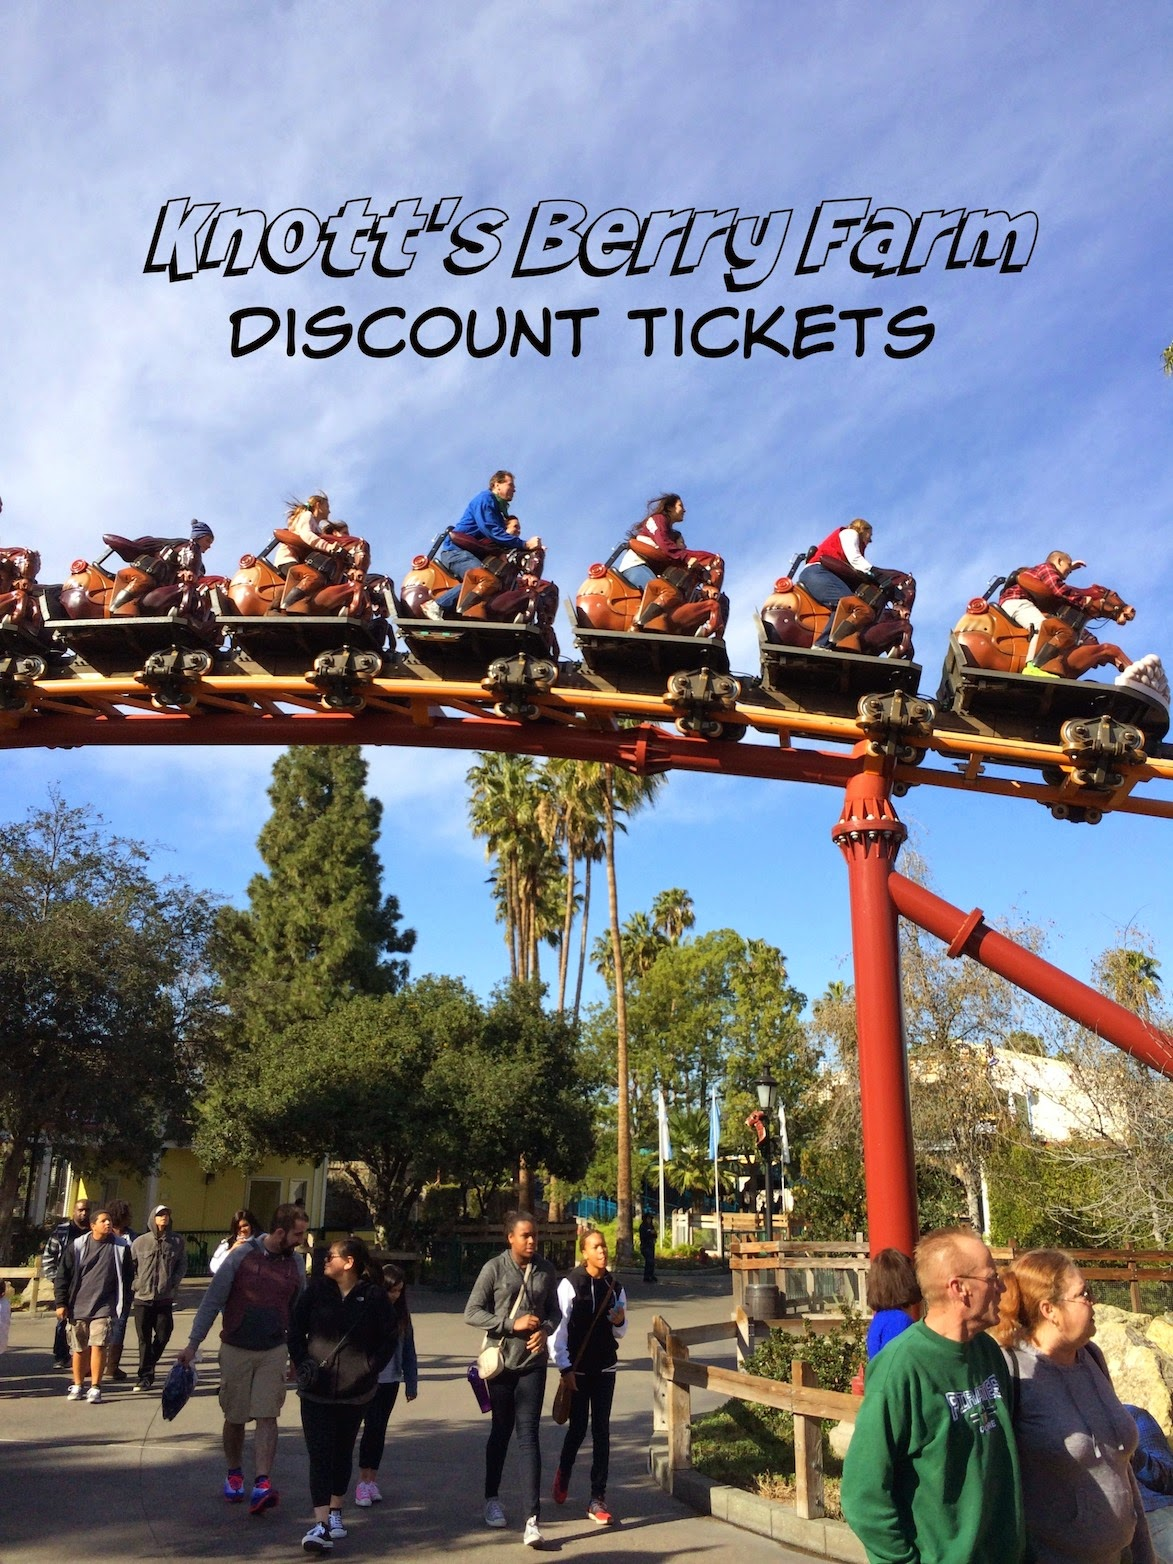 "Nov 22,  · Knott's Berry Farm Any Day Discount Tickets $41 { Deal Details } (reg. $45 – $75) *Editor's Pick* Fees are only $2 with this source. These not only include Knott's Scary Farm and Knott's Merry Farm, they are ""Any Day"" tickets valid whenever you want to use them, now through December."